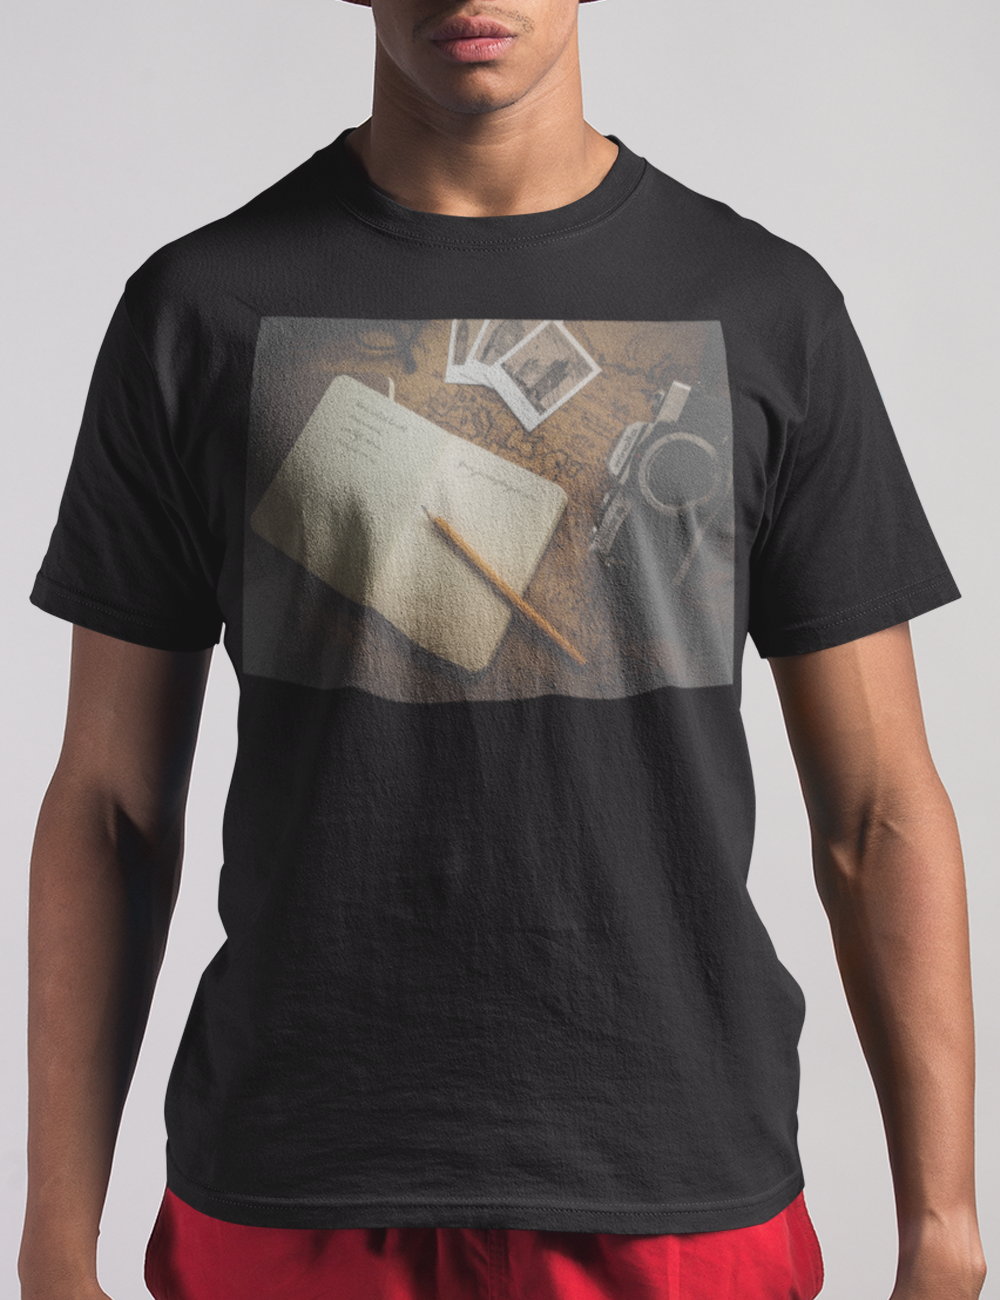 Your Journey Begins Now | T-Shirt